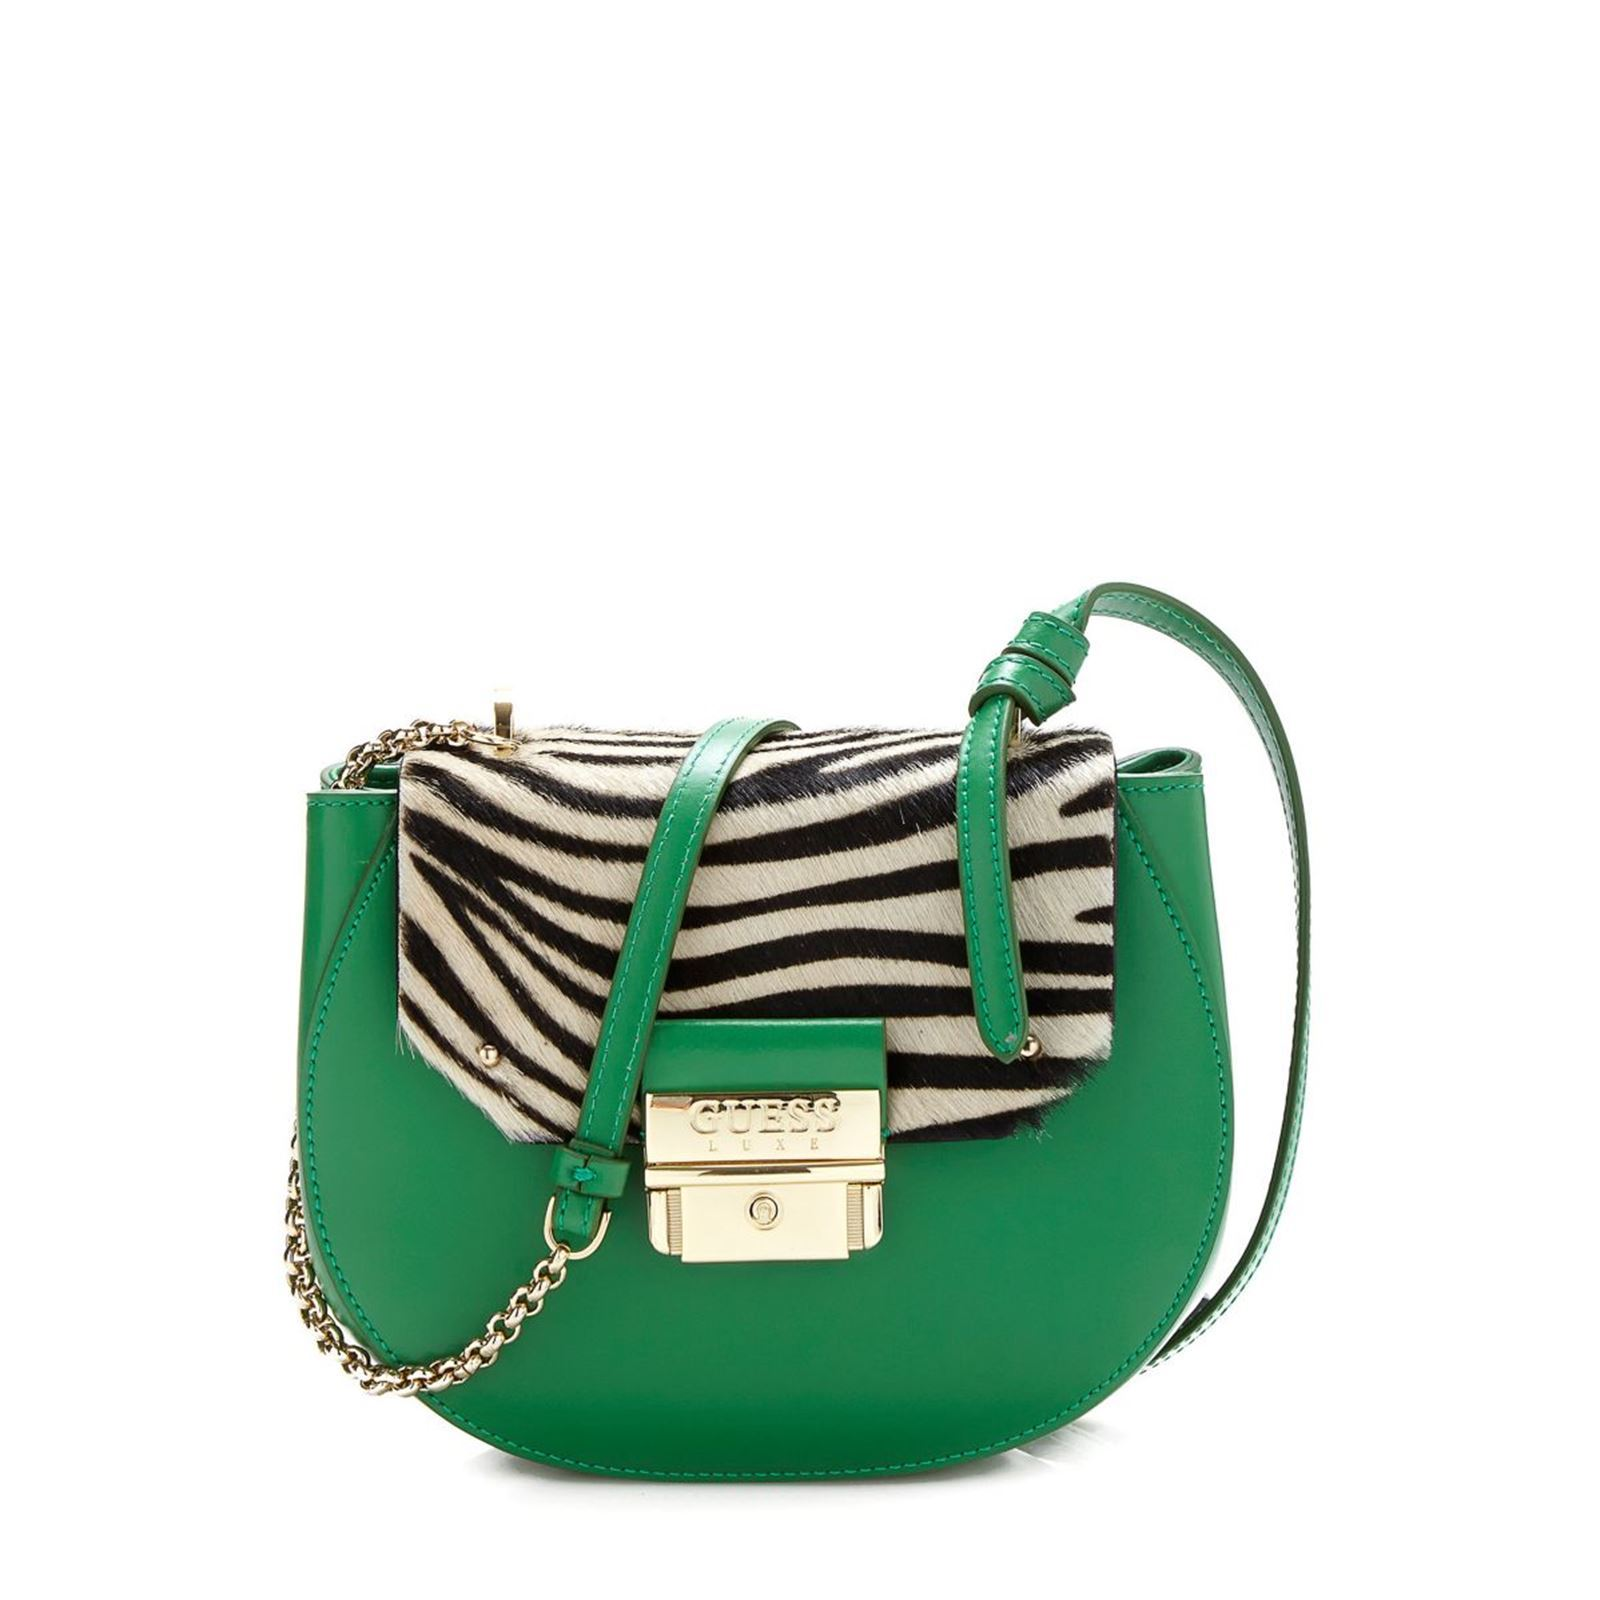 Verde Brandalley Foal Leather Bag Satchel Effect Guess Maelle qwfYvpx0